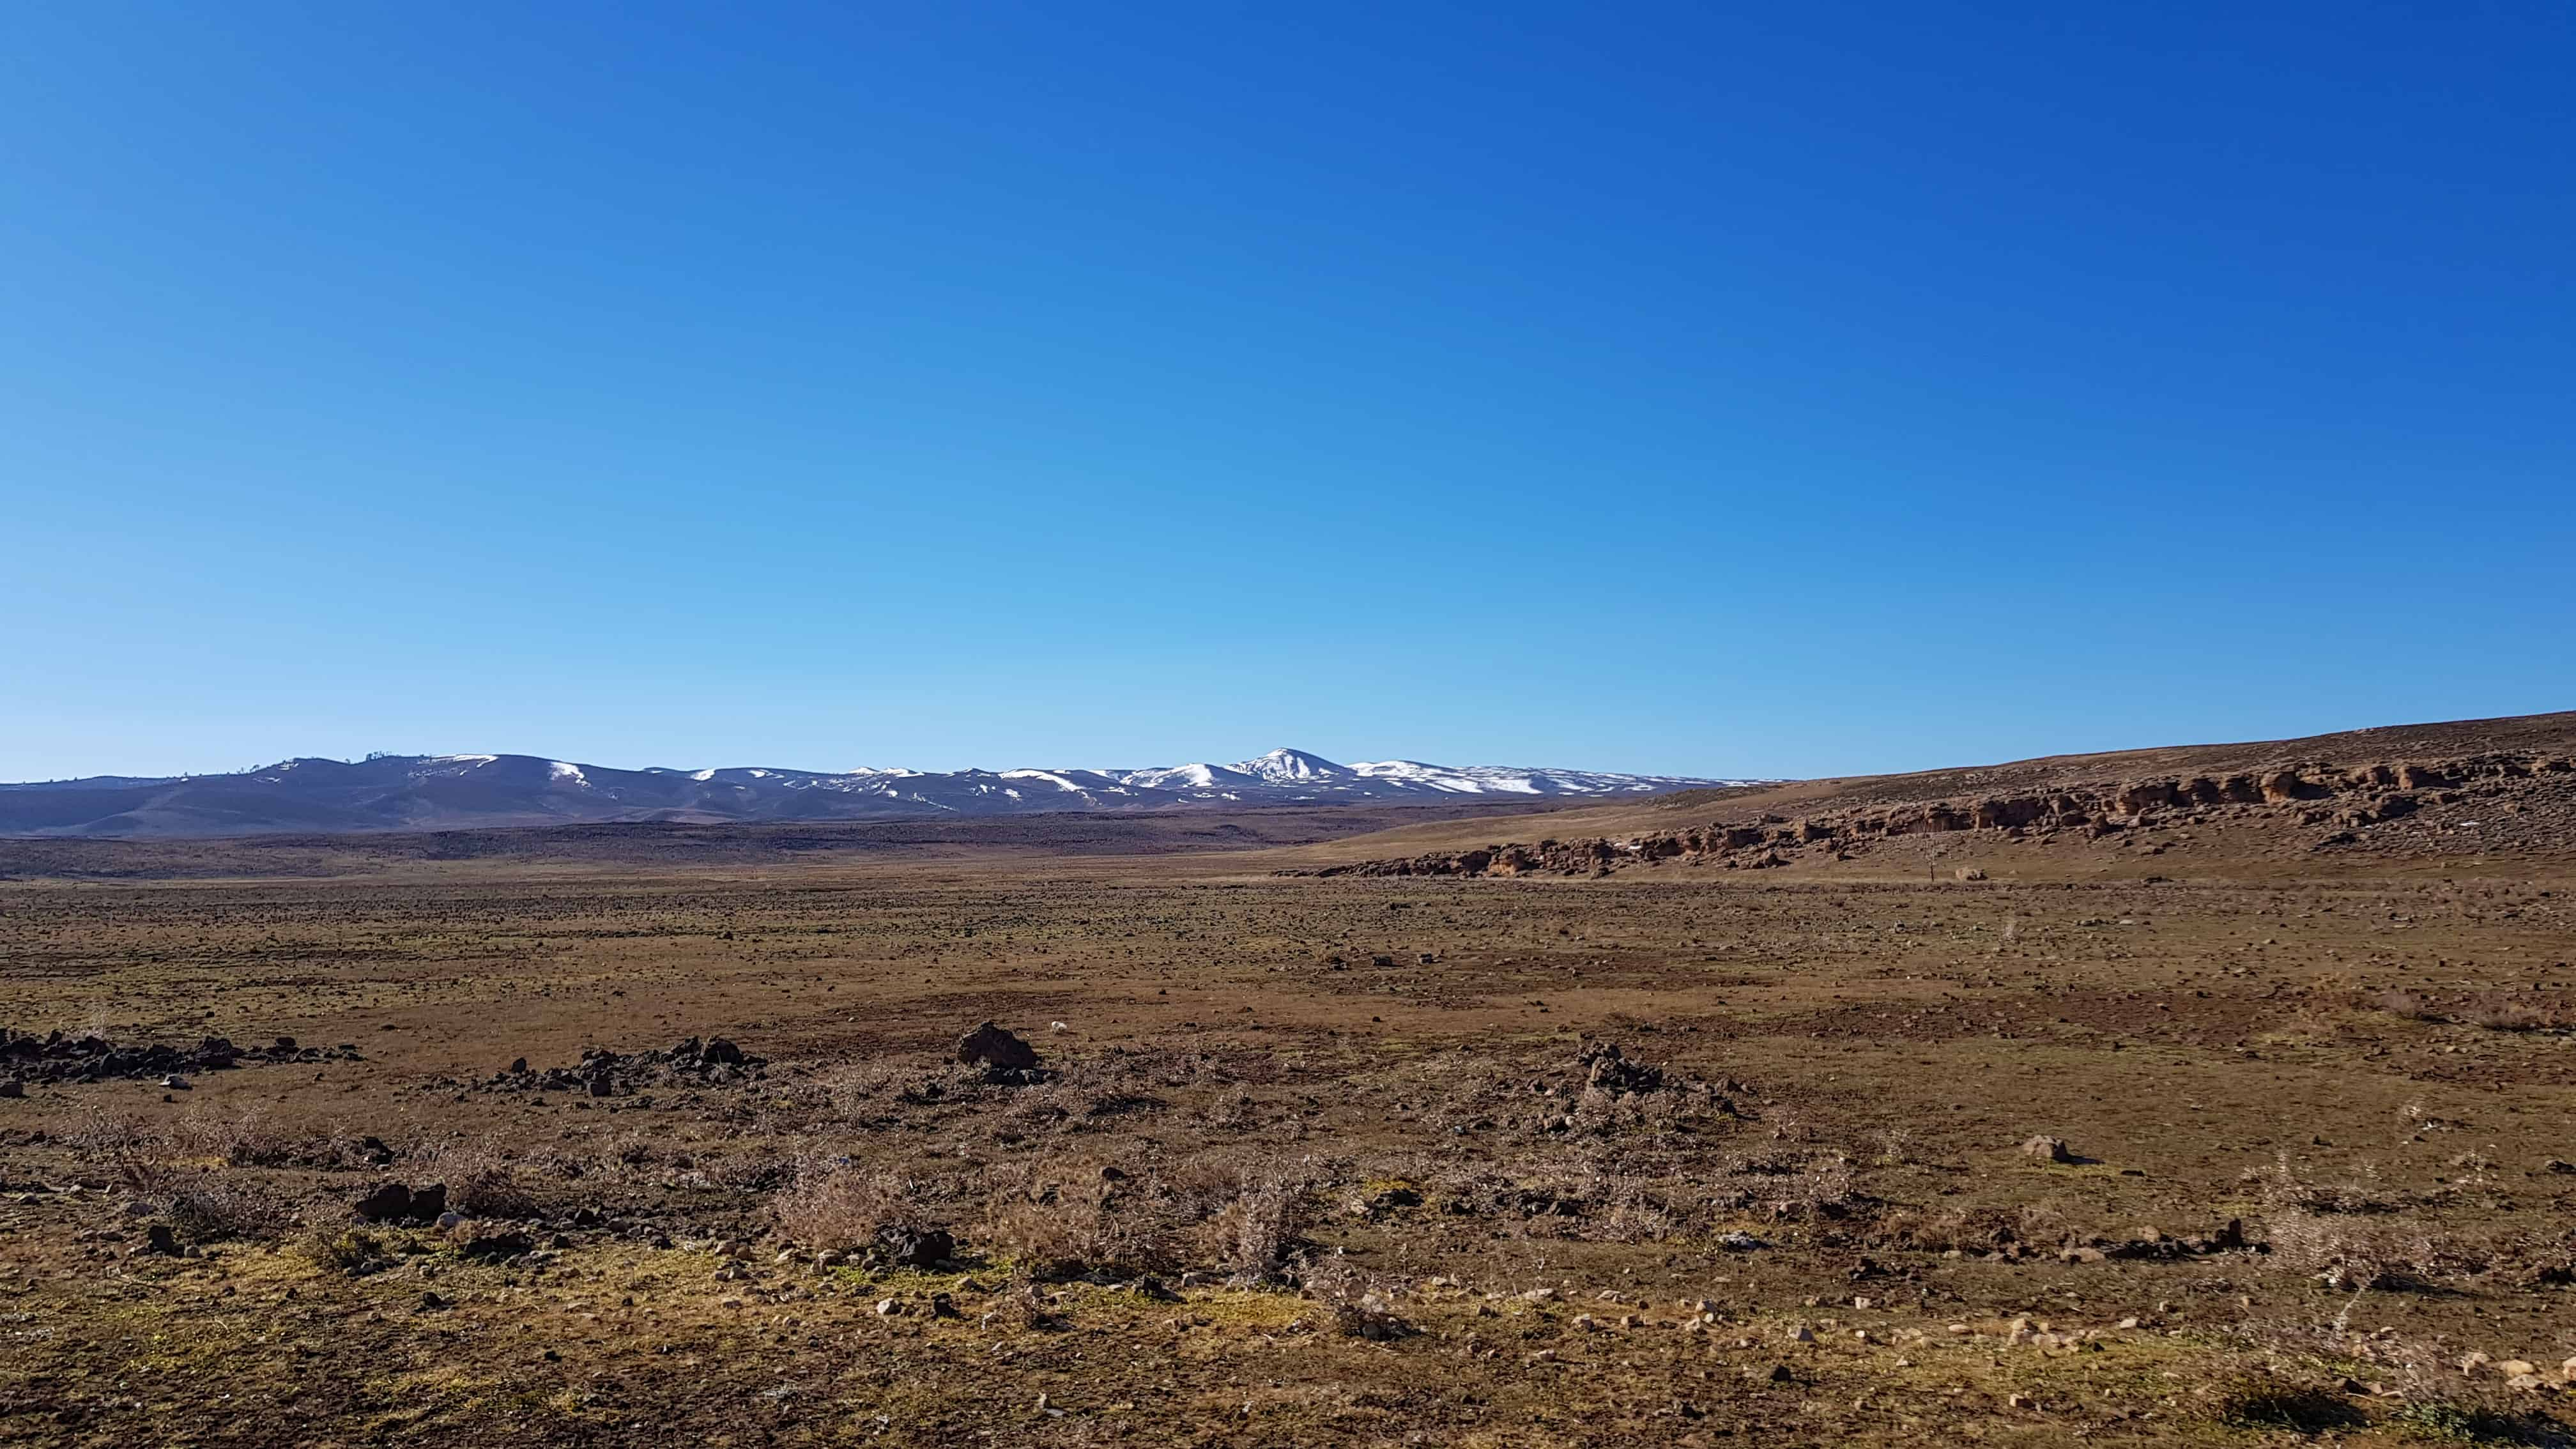 Middle Atlas to High Atlas: snow capped mountains